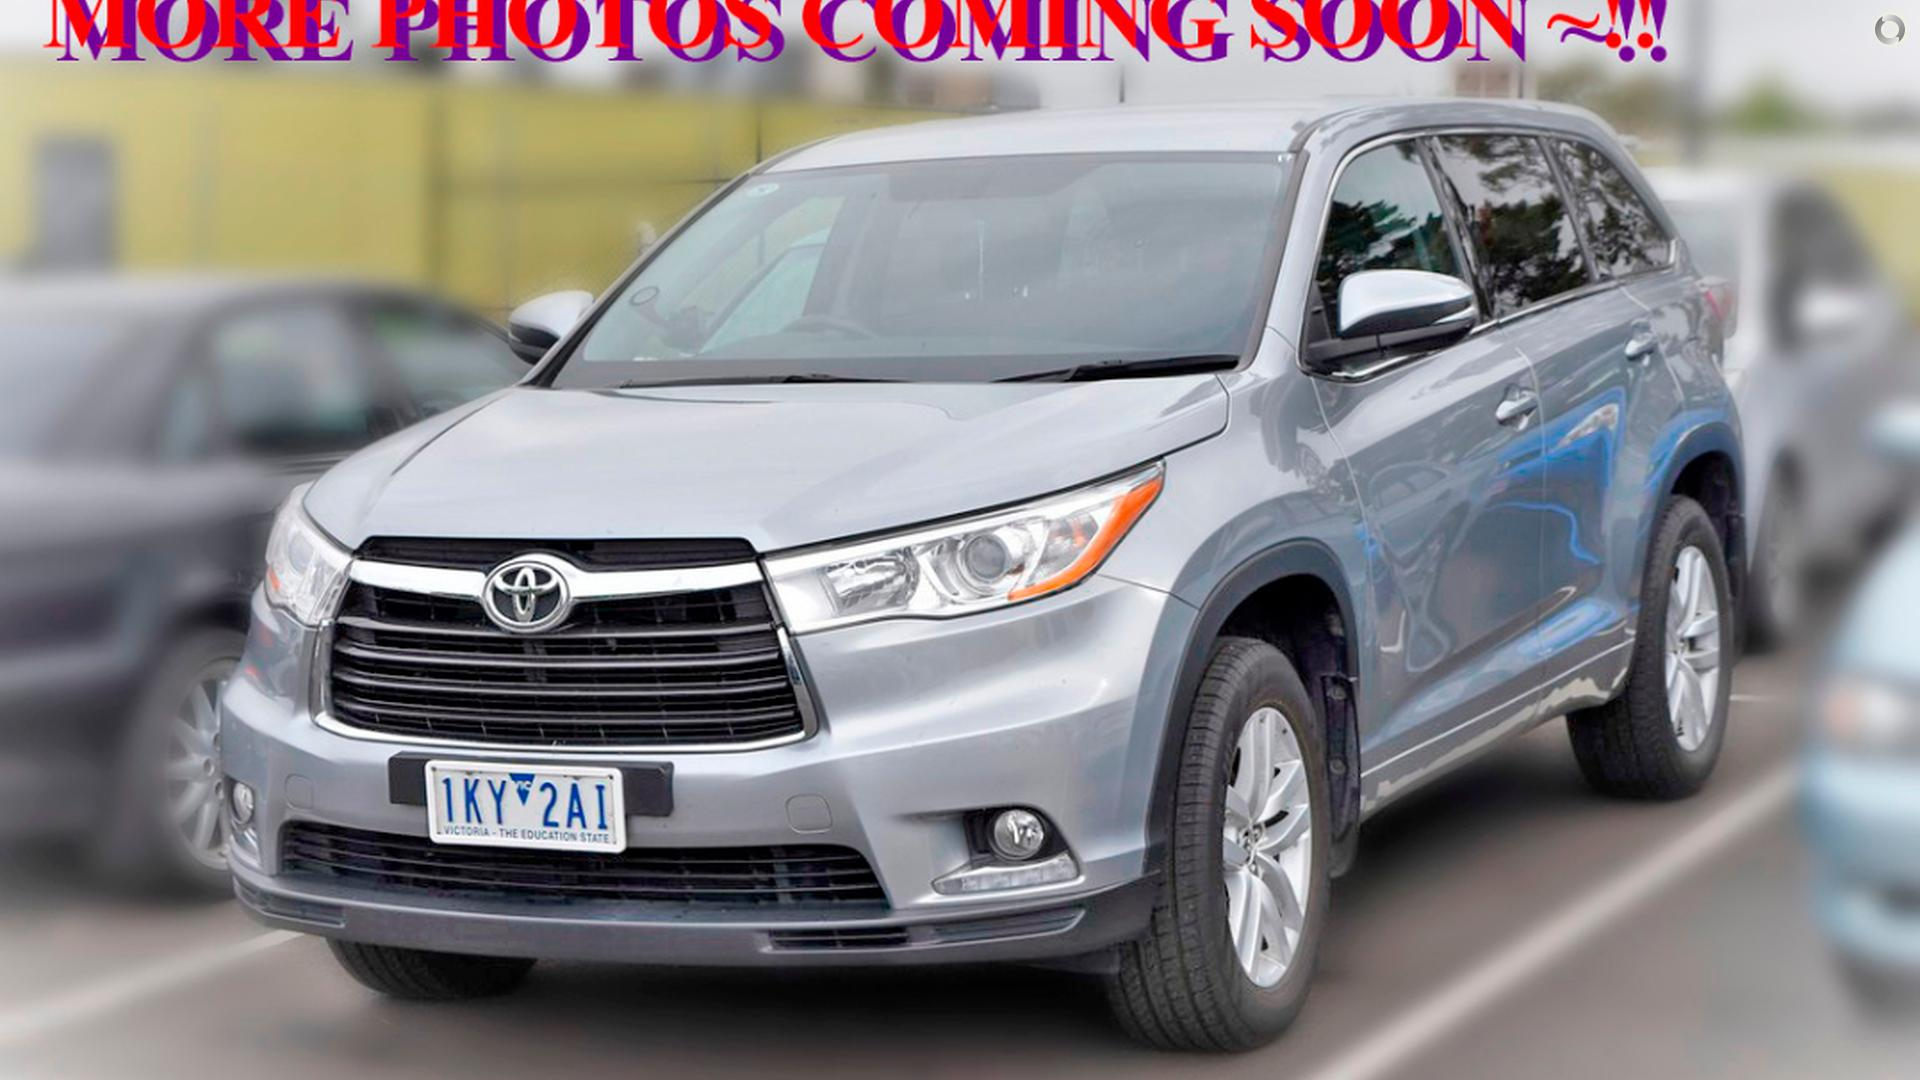 2016 Toyota Kluger Gx Gsu50r Hfh Auto Group